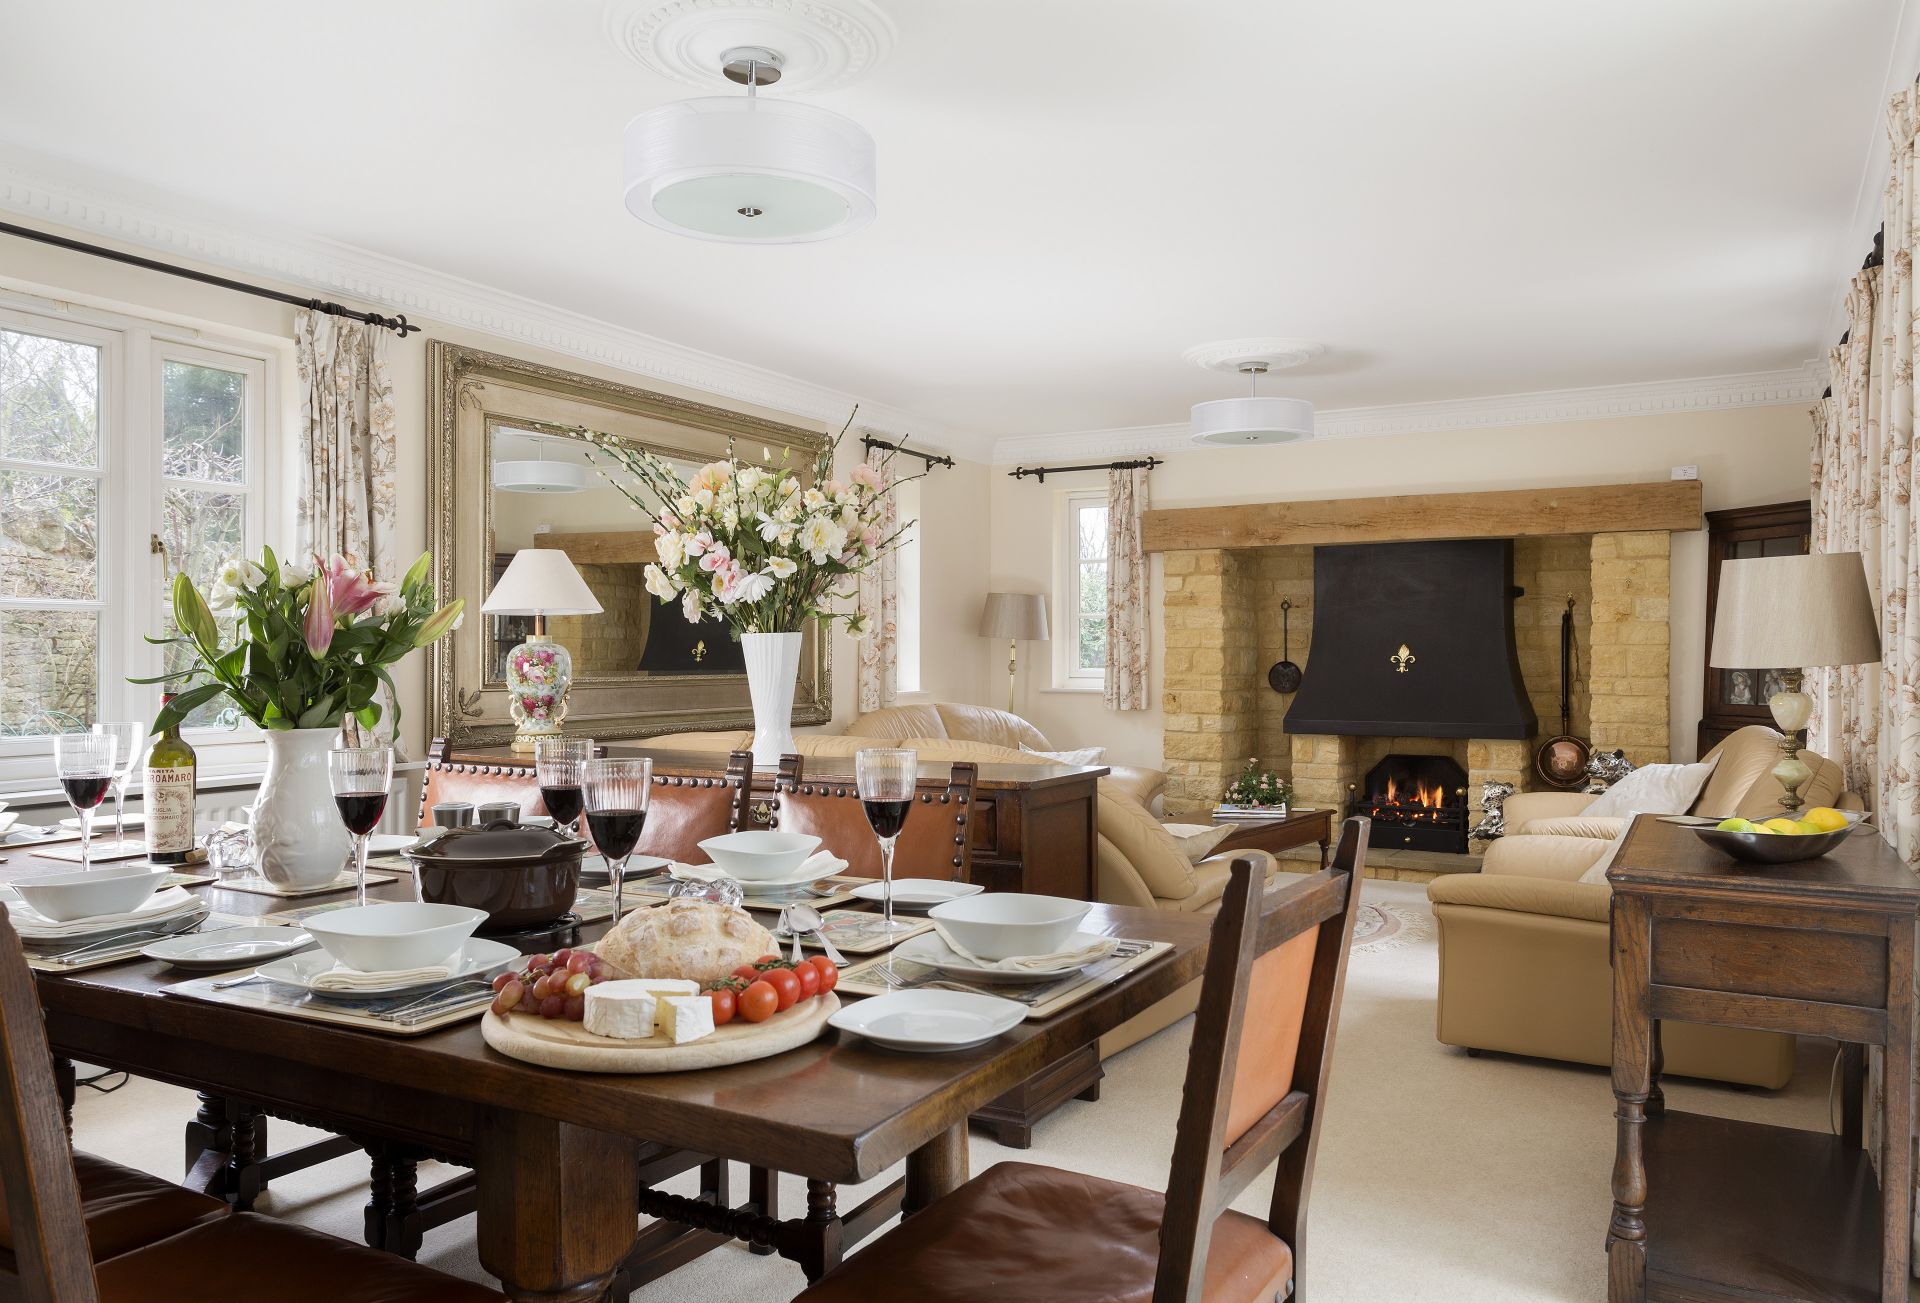 Enjoy a delicious meal and retire to the sitting room with fireplace